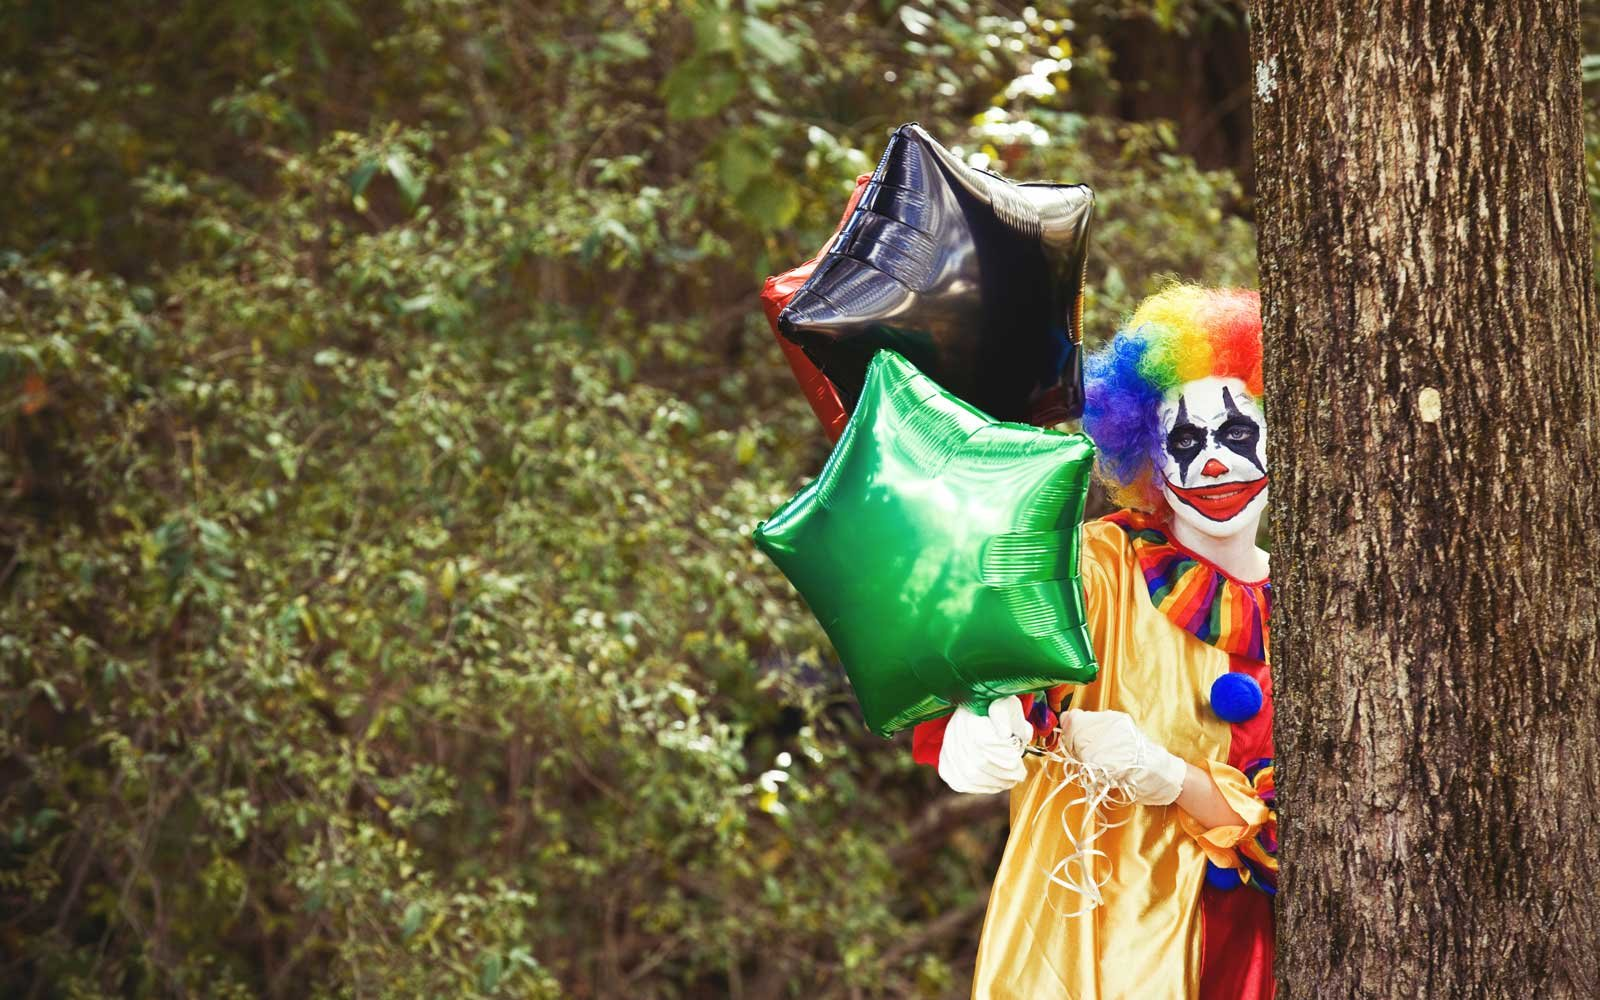 You can send a scary clown to deliver donuts (and nightmares) to your friends